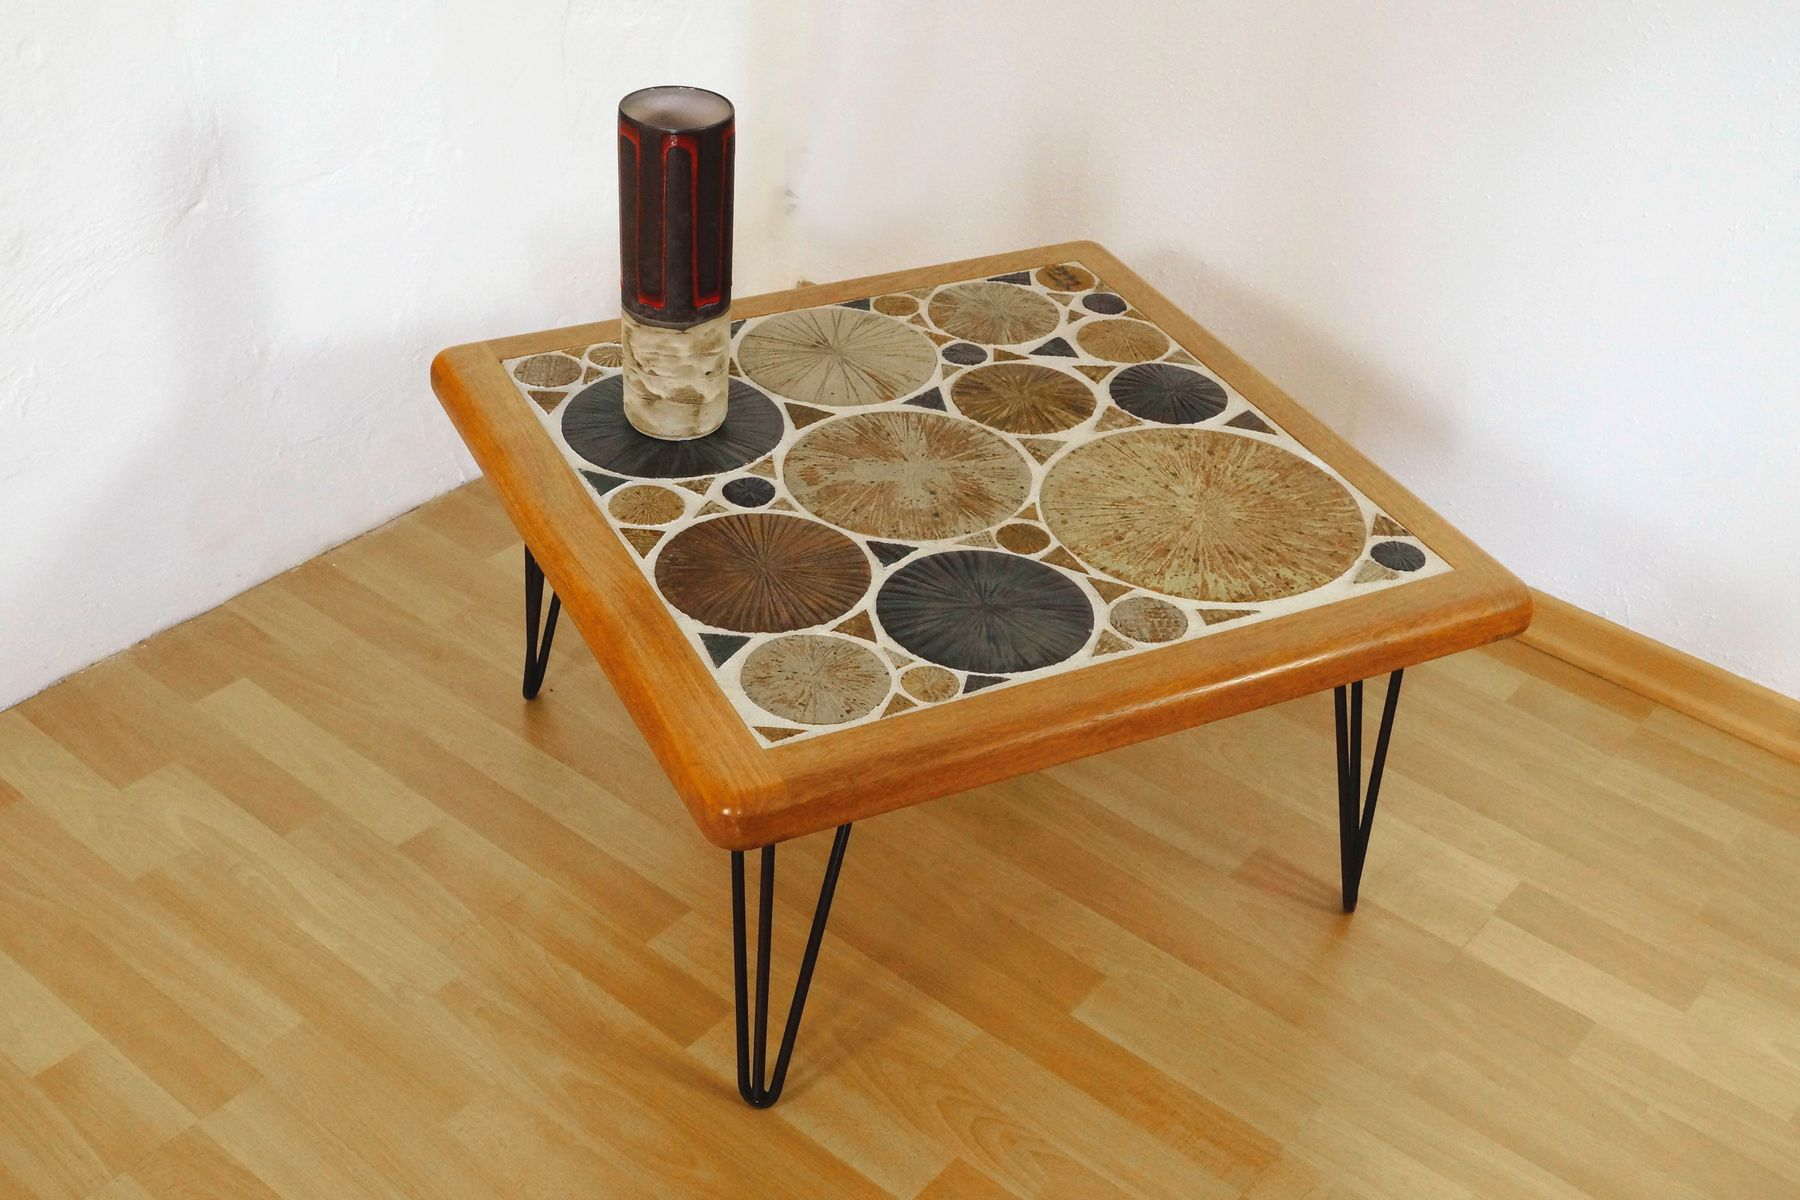 Mid Century Teak Coffee Table With Hairpin Legs By Tue Poulsen For Haslev For Sale At Pamono